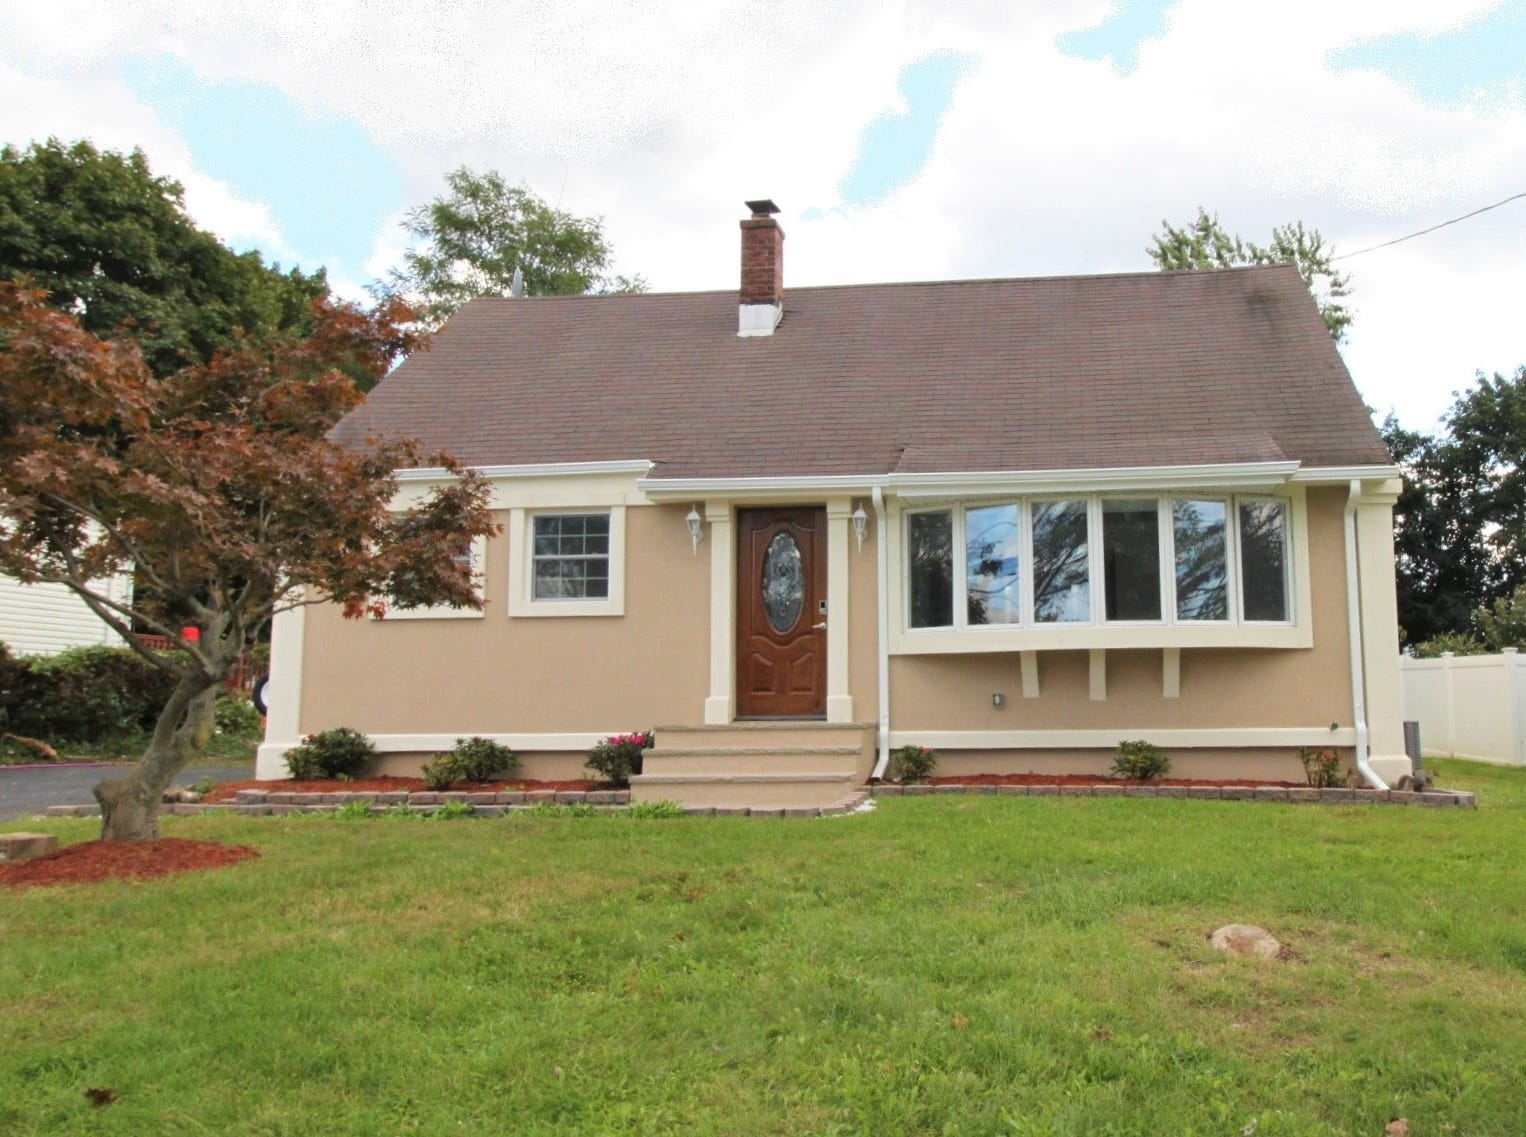 This completely renovated four-bedroom Cape Cod at 65 Tunison Road in North Brunswick will be open to the public from 1 to 4 p.m. Sunday, Oct. 21. It's offered at $314,900.